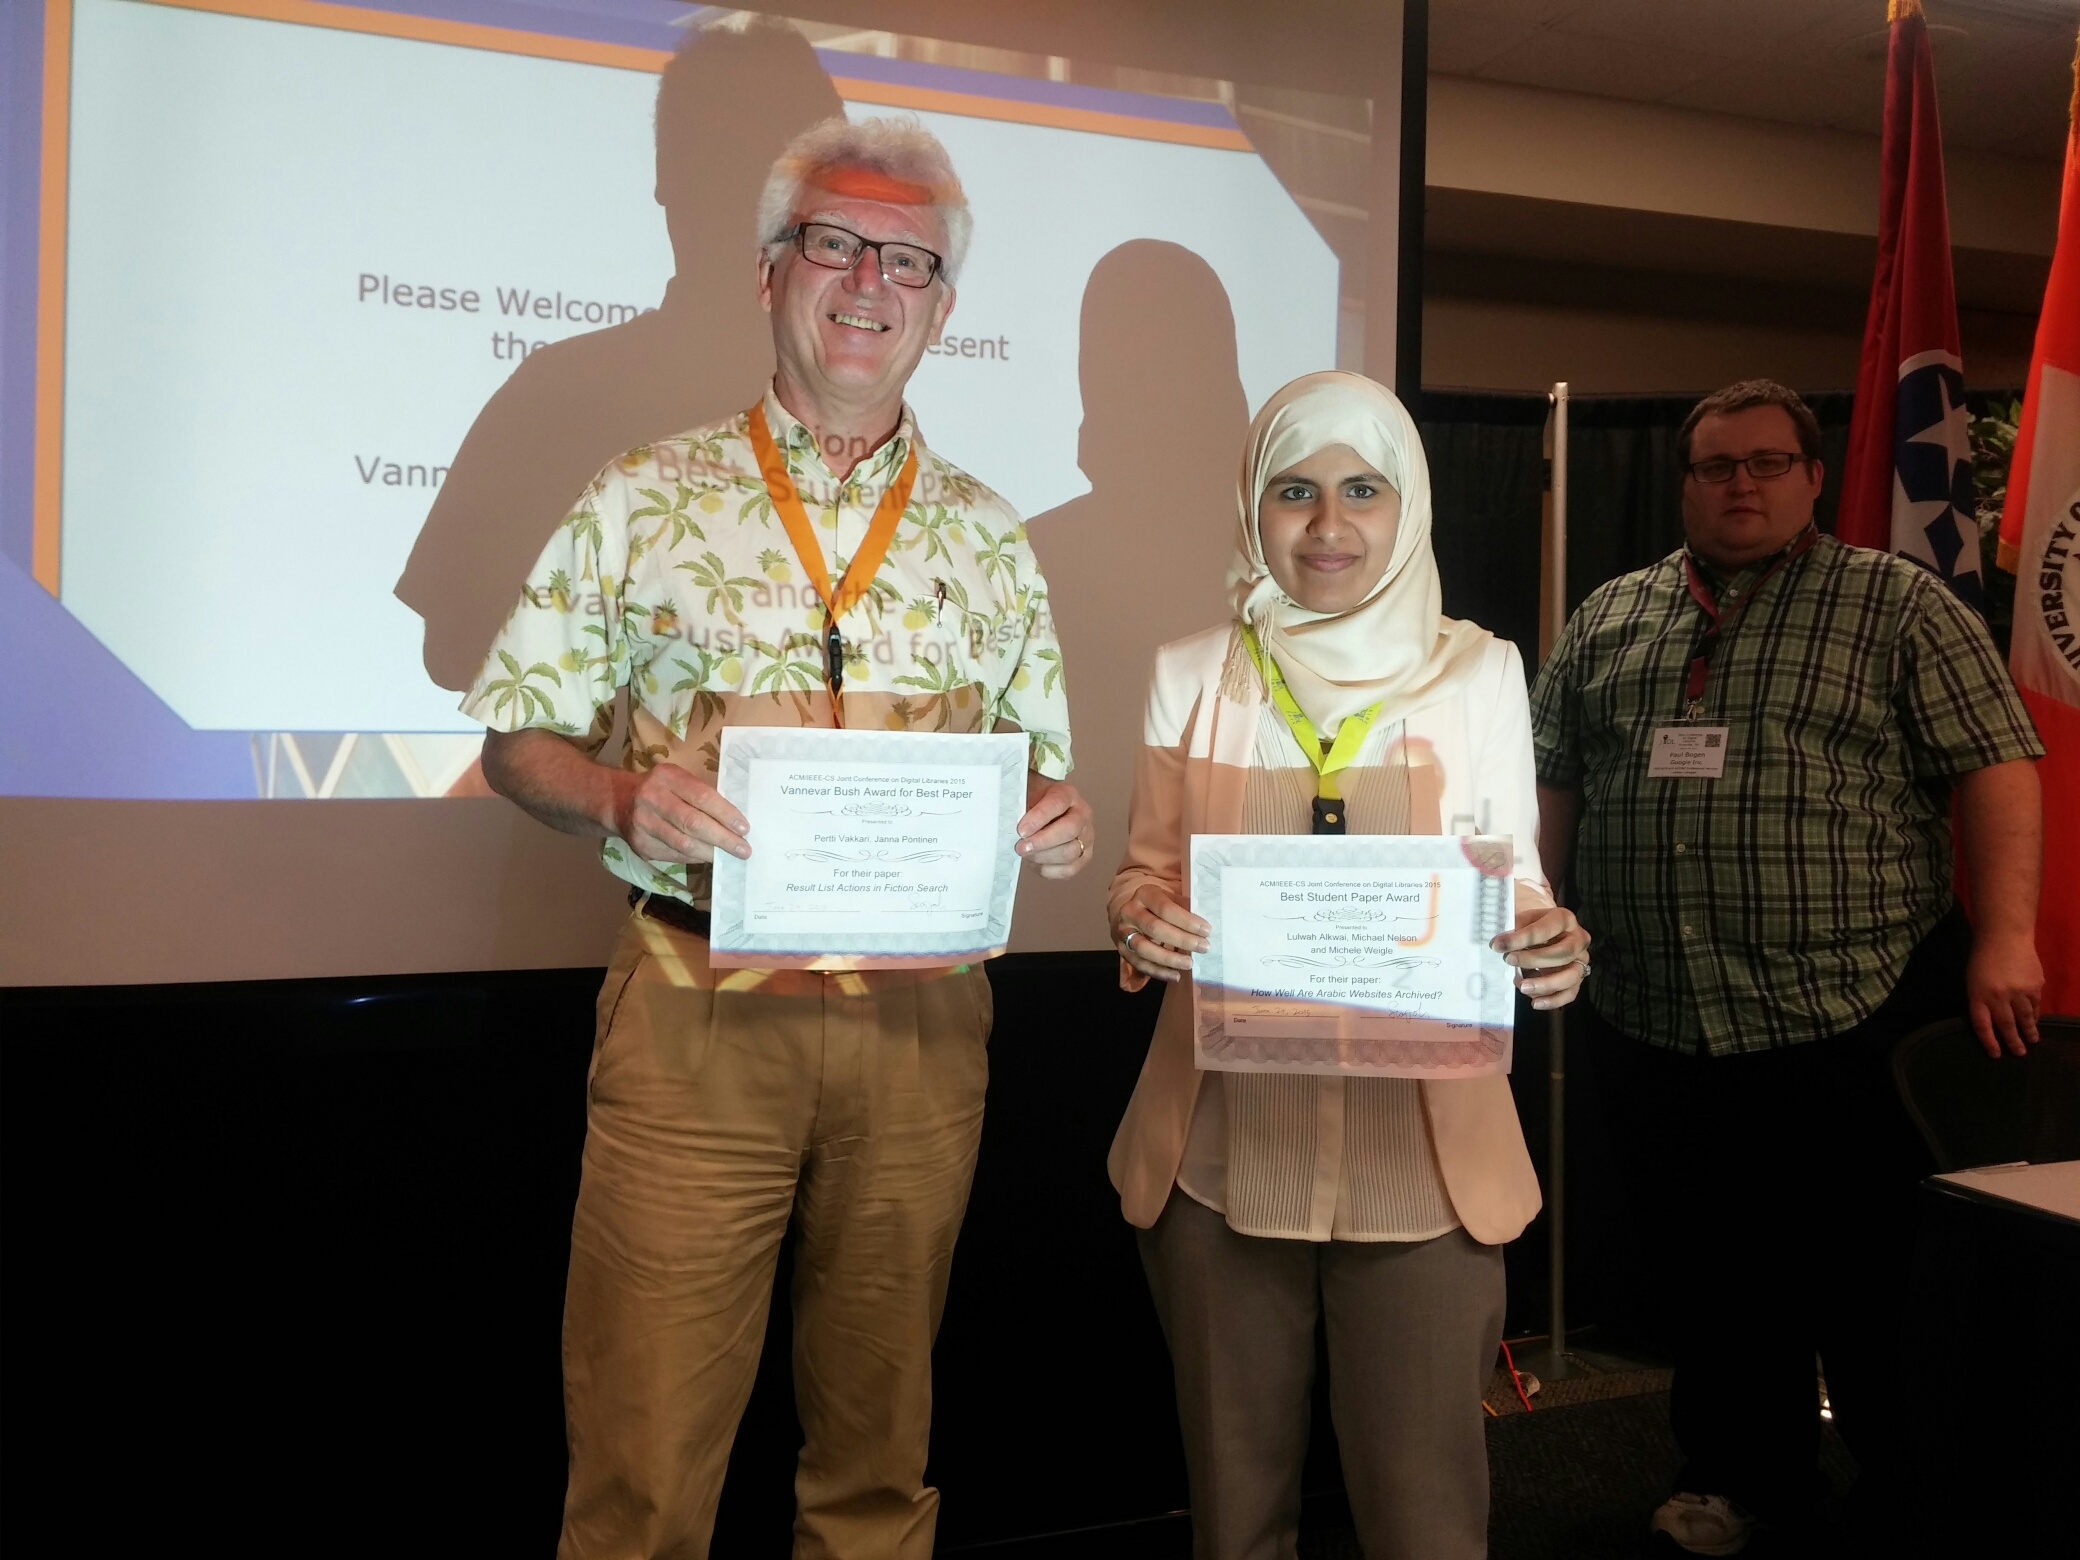 JCDL 2016 best paper award winners